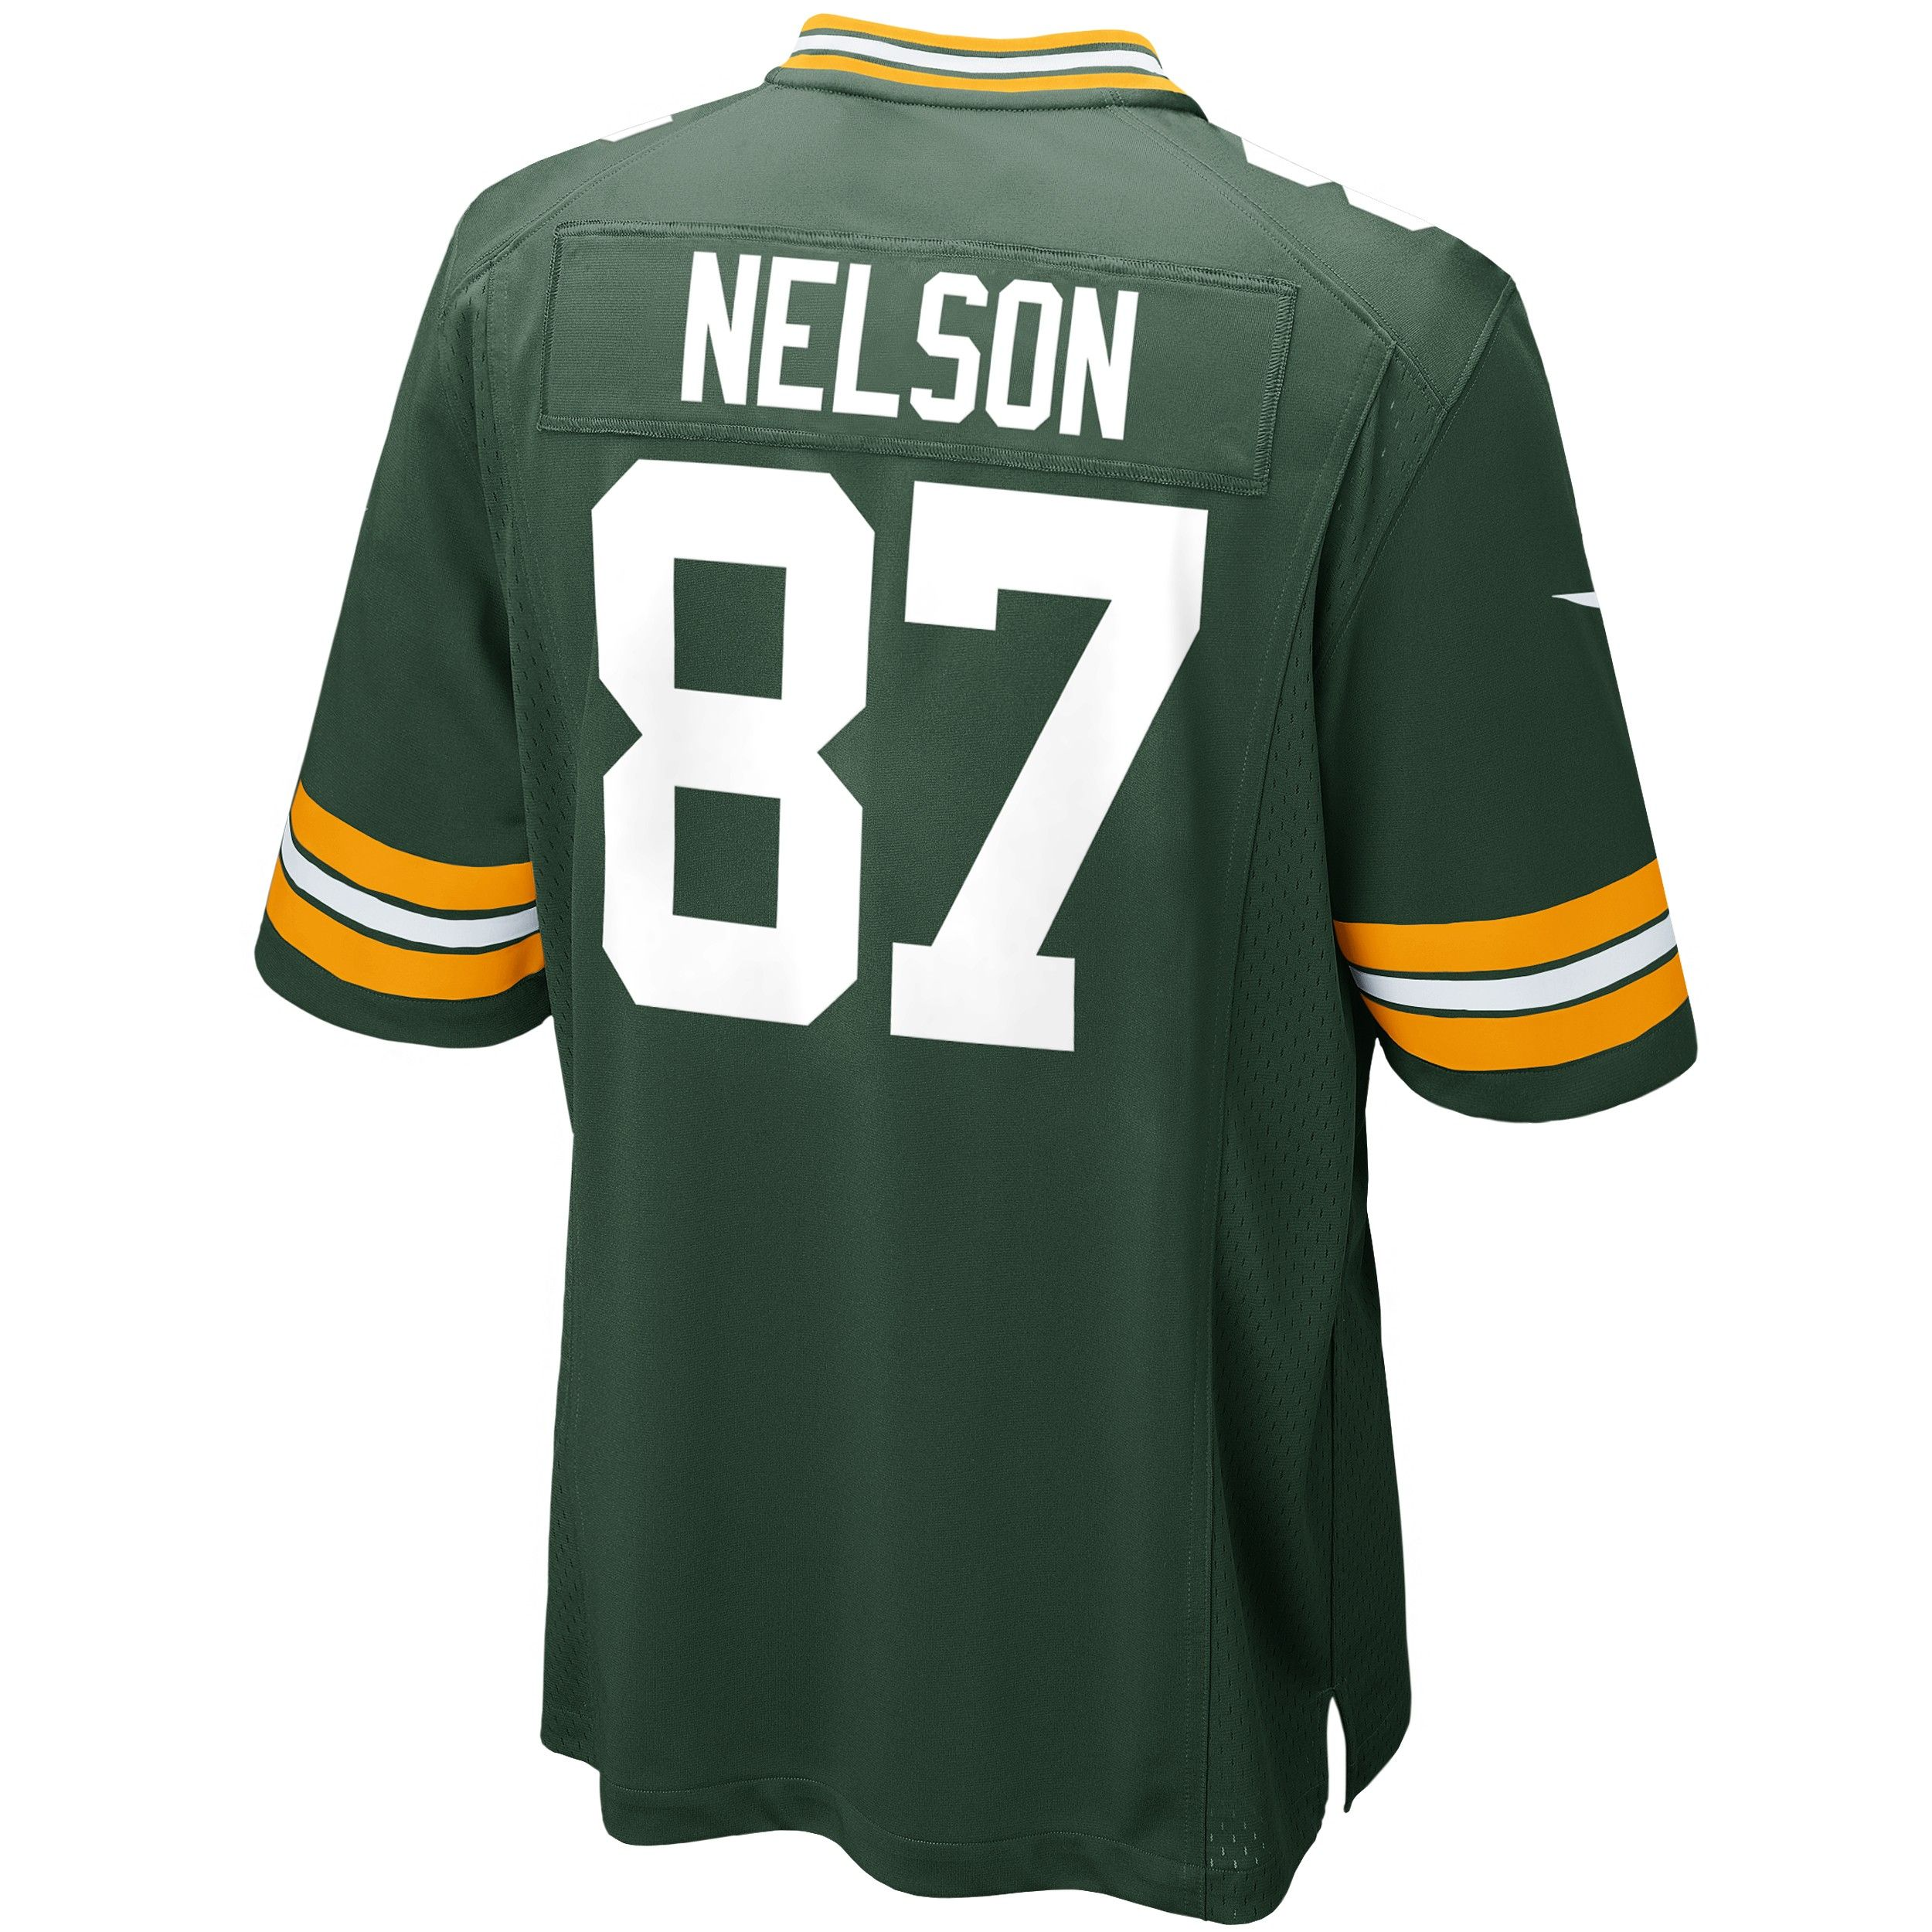 #87 Jordy Nelson Home Game Jersey